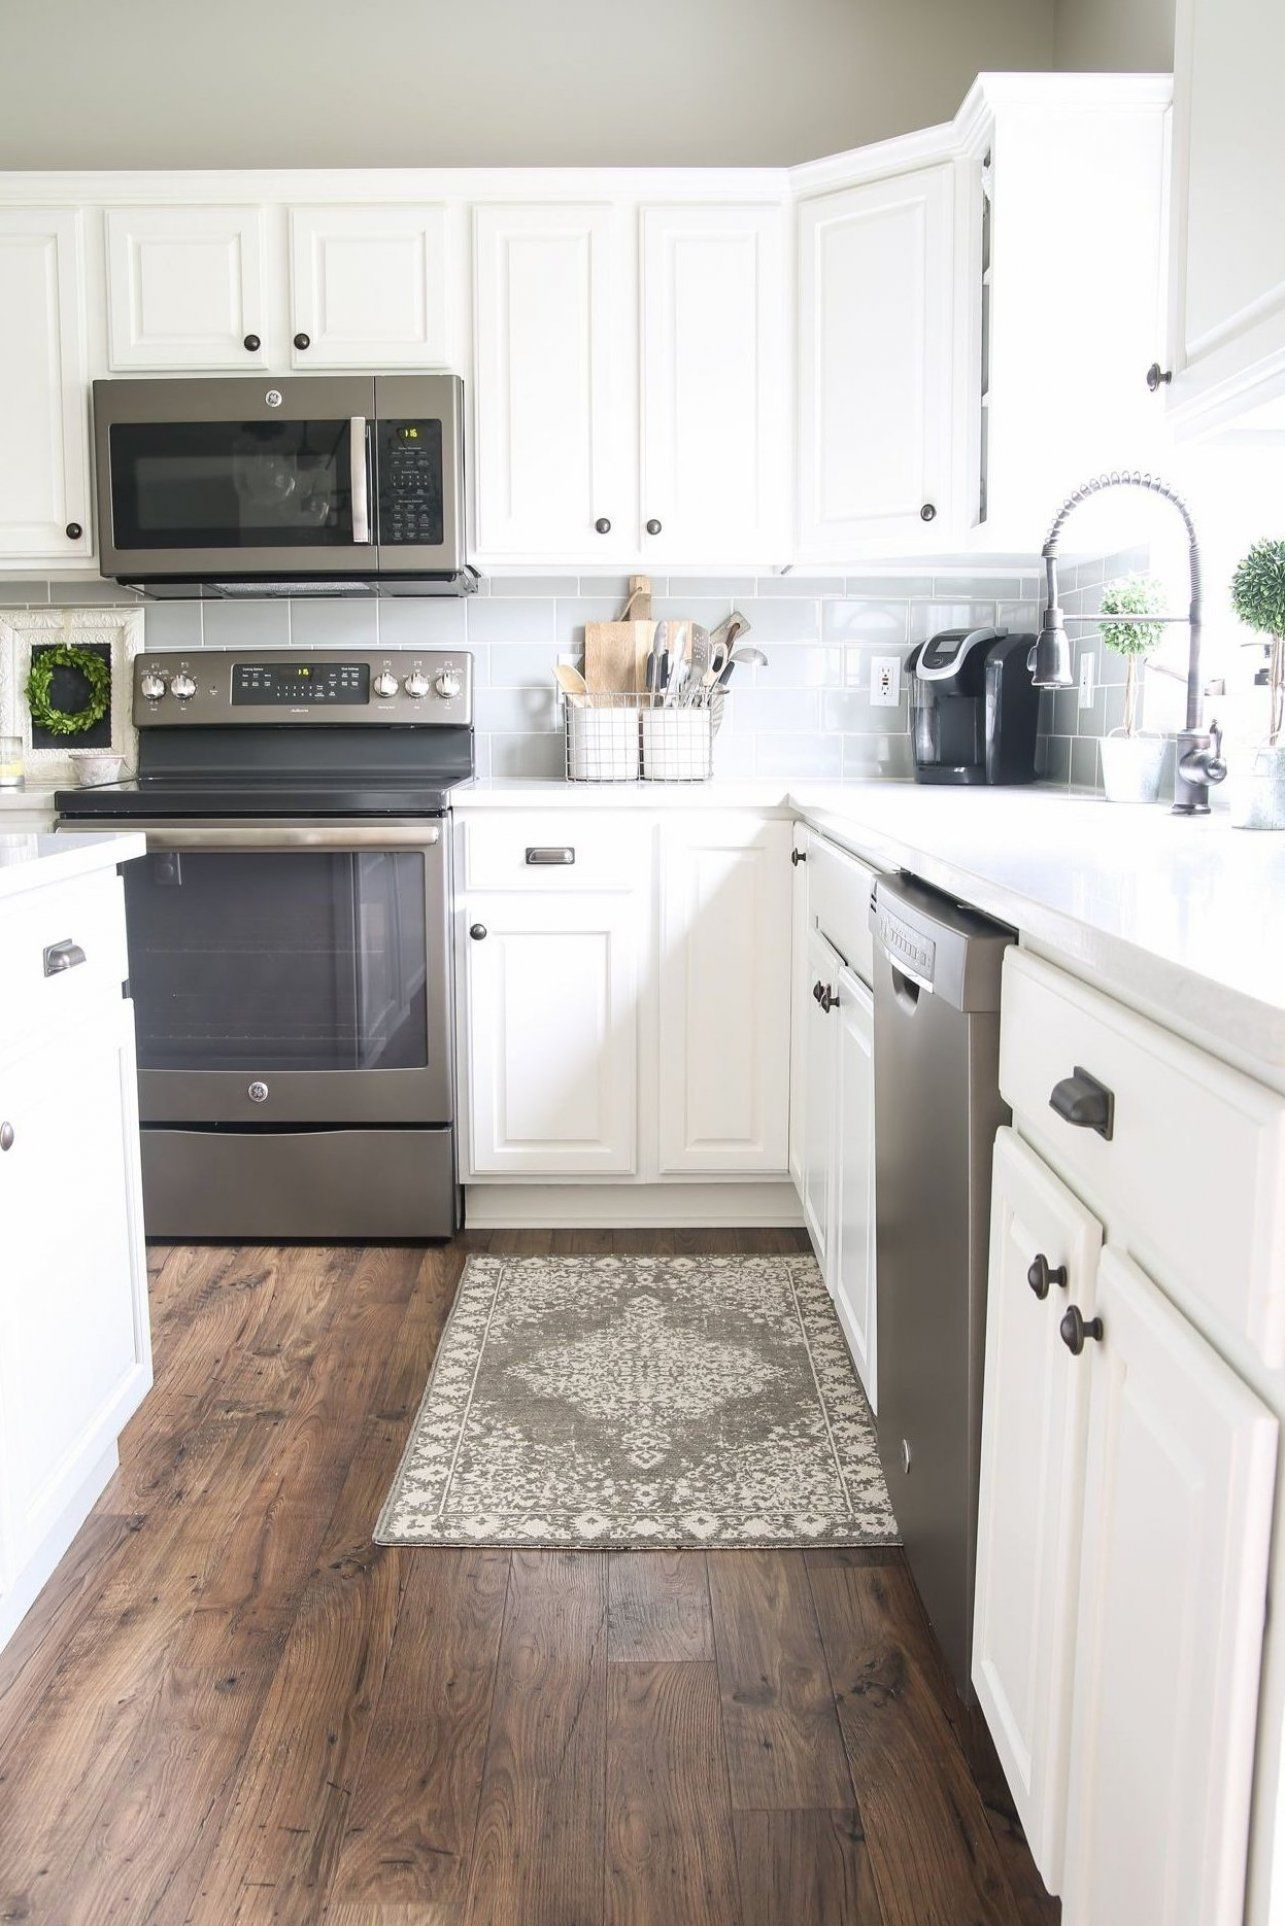 How Our Laminate Floors Are Holding Up Via House By Hoff In 2020 Wood Laminate Flooring Kitchen Cabinets Decor Laminate Kitchen Cabinets